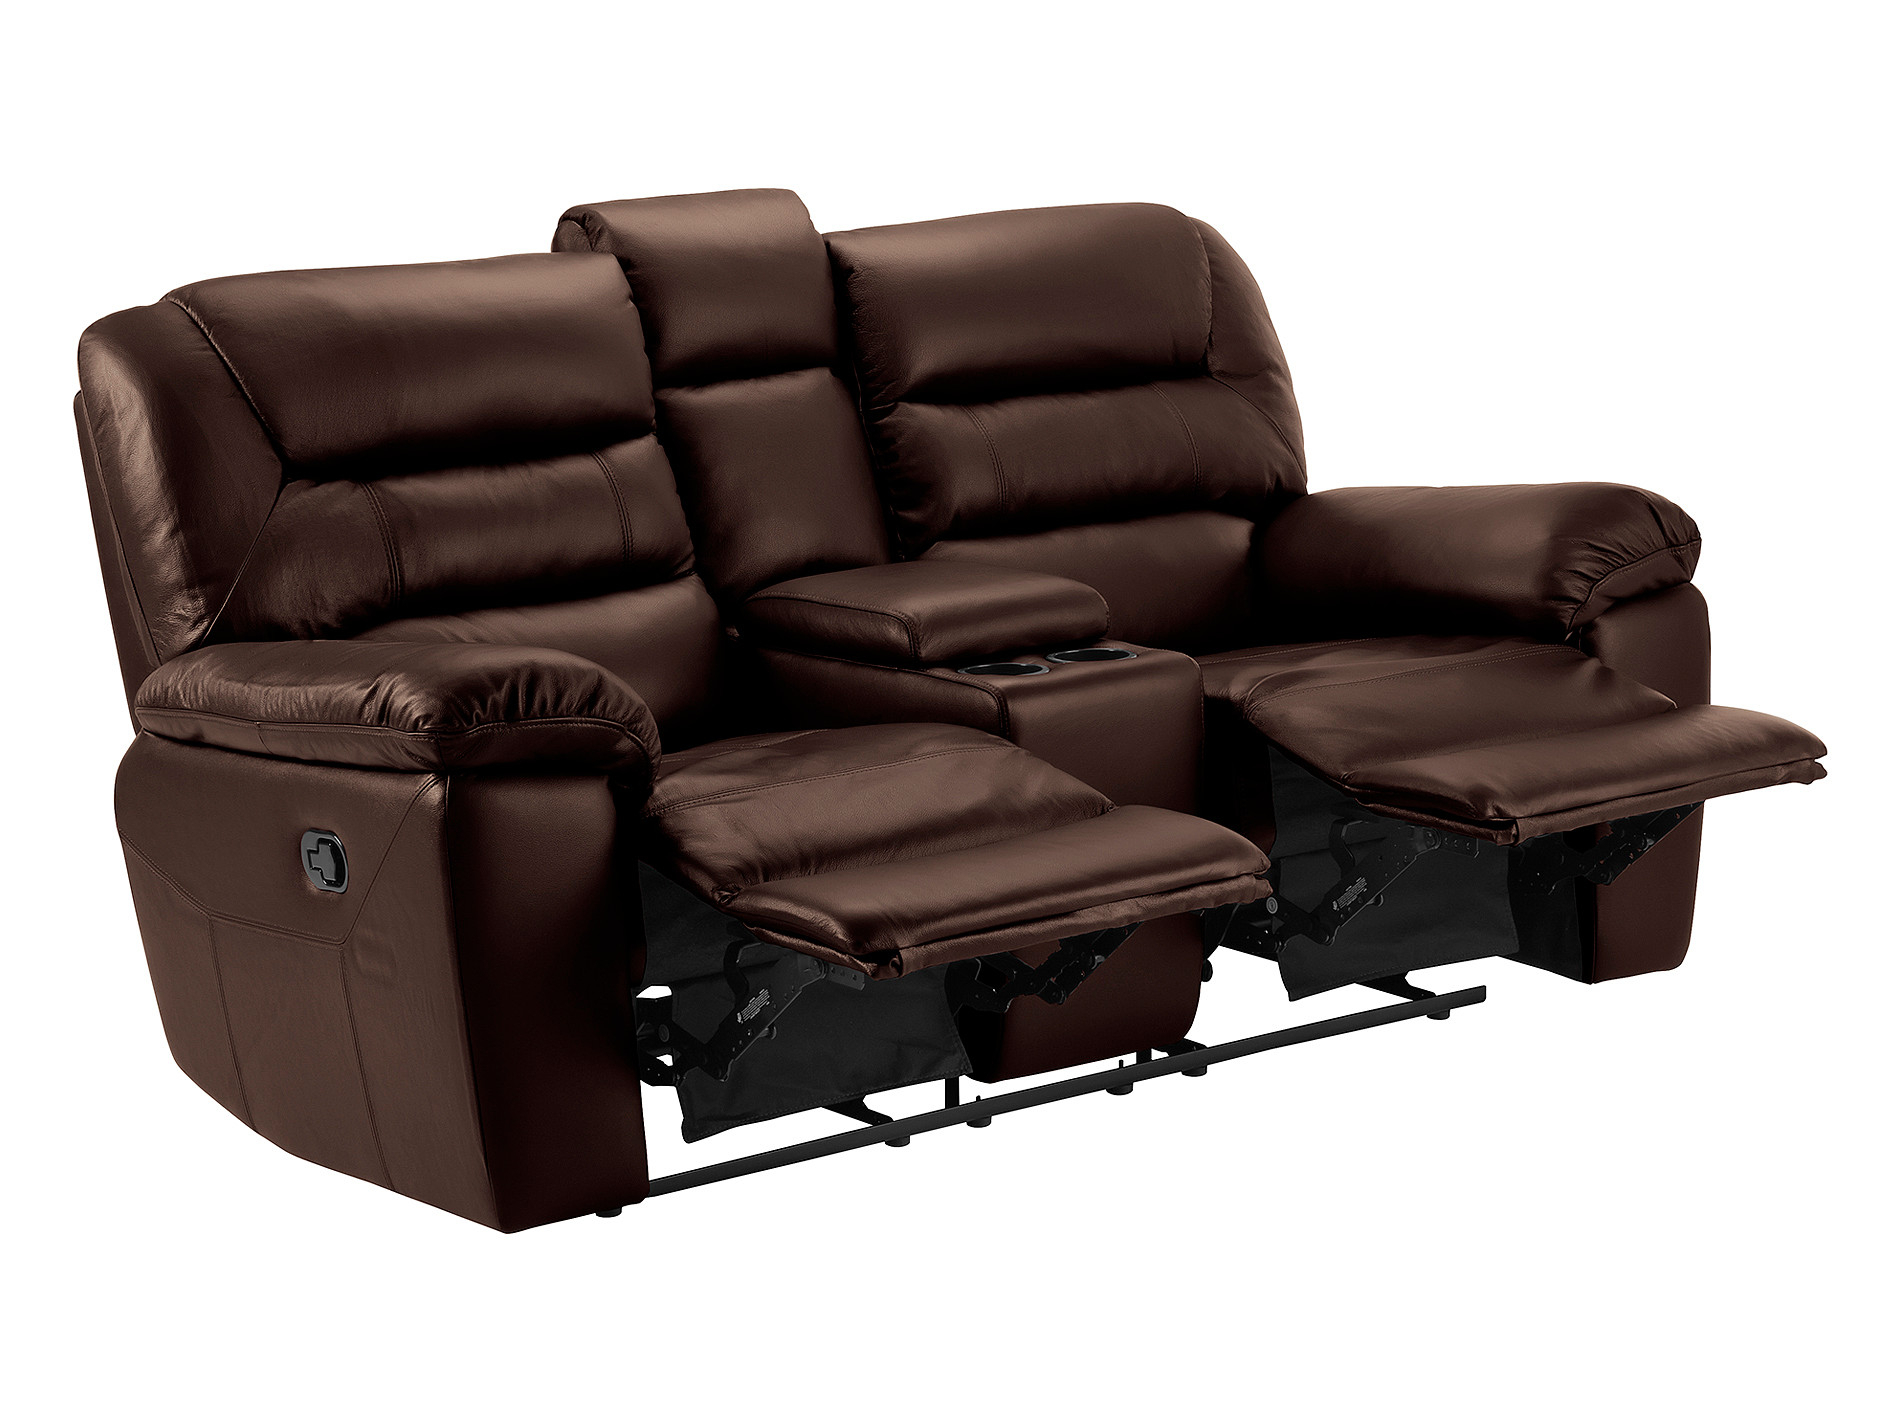 Devon Small Sofa With Manual Recliners – 2 Tone Brown Leather Pertaining To Navigator Gray Manual Reclining Sofas (View 9 of 11)